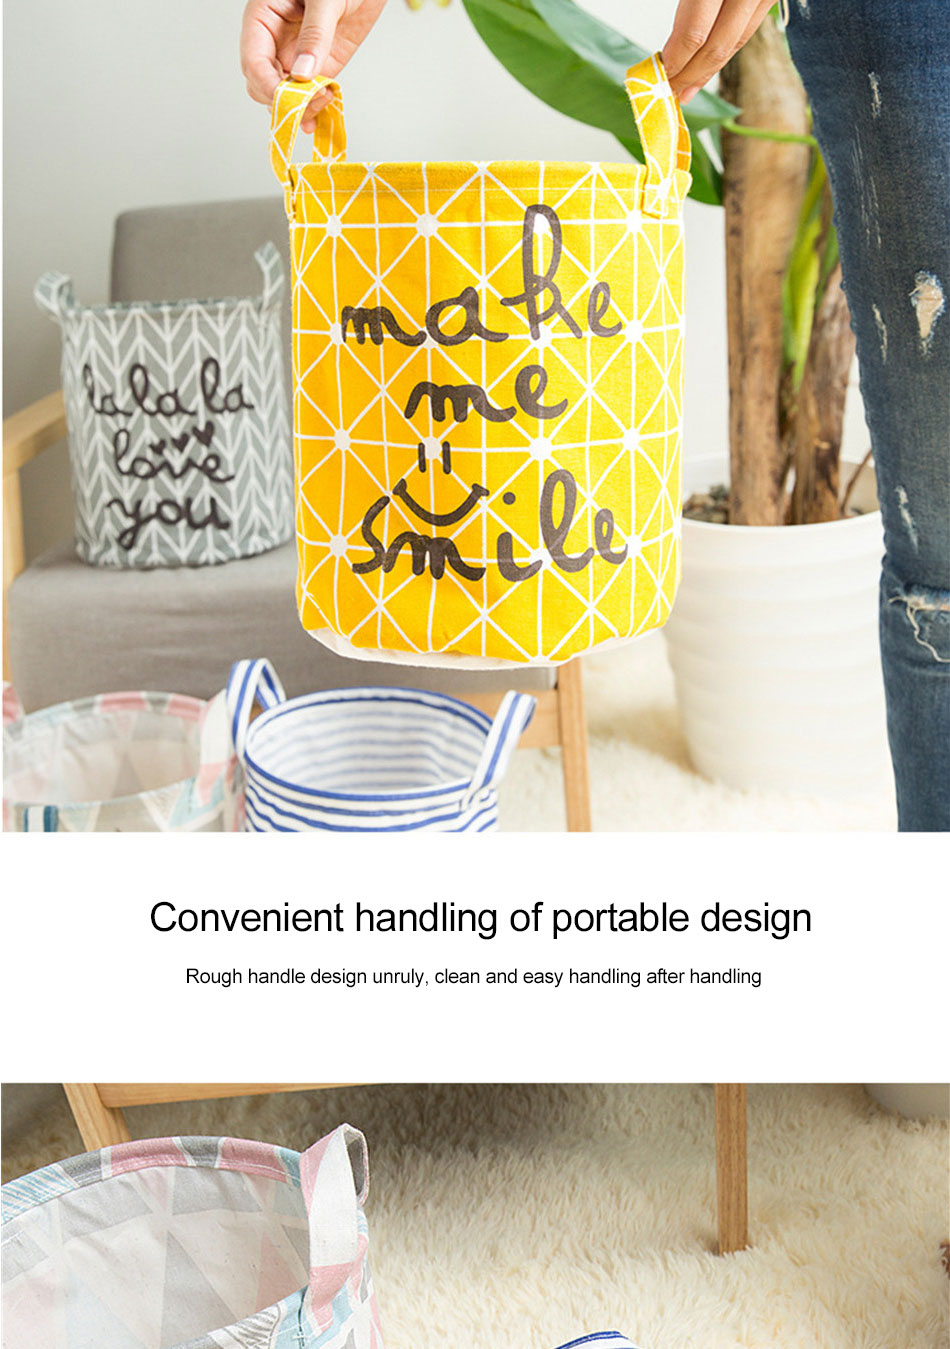 Storage Baskets Folding Laundry Basket Yellow Arrow Couple Linen Washing Clothes Barrel Bags With Handles Kids Toys Hamper Bag (6)